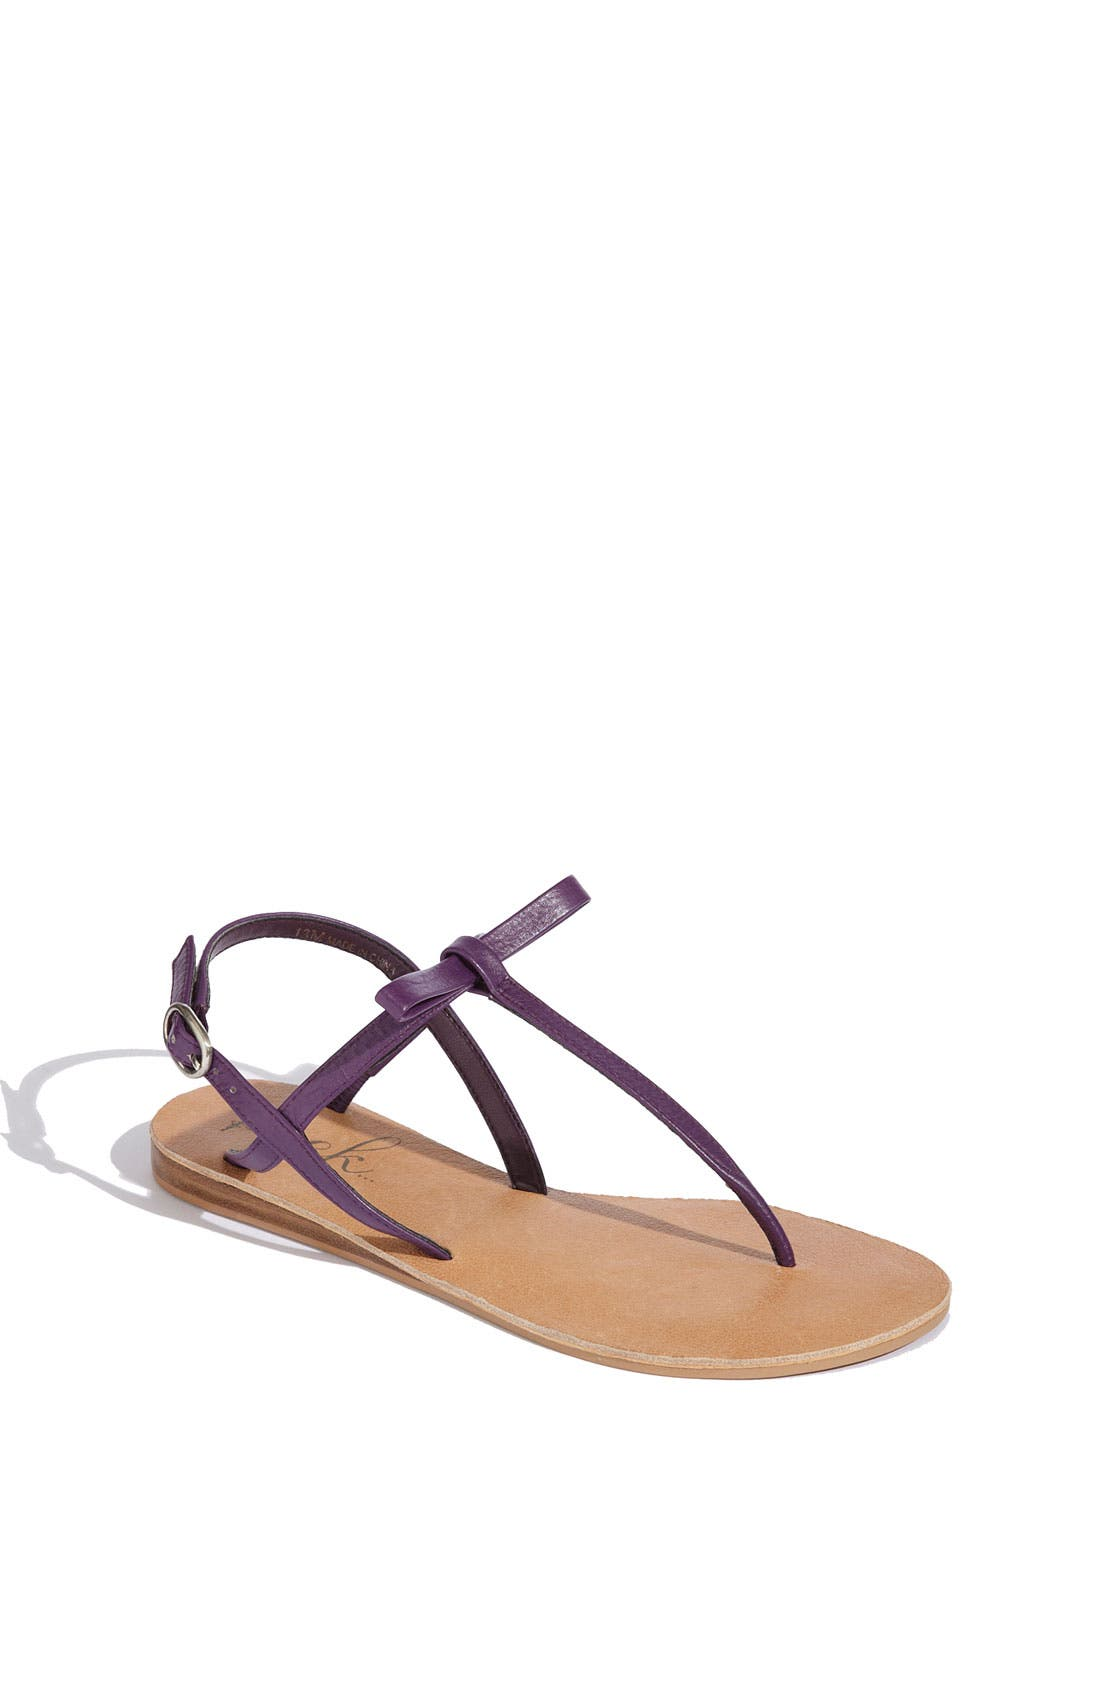 Main Image - Peek 'Affinity' Leather Sandal (Toddler, Little Kid & Big Kid)